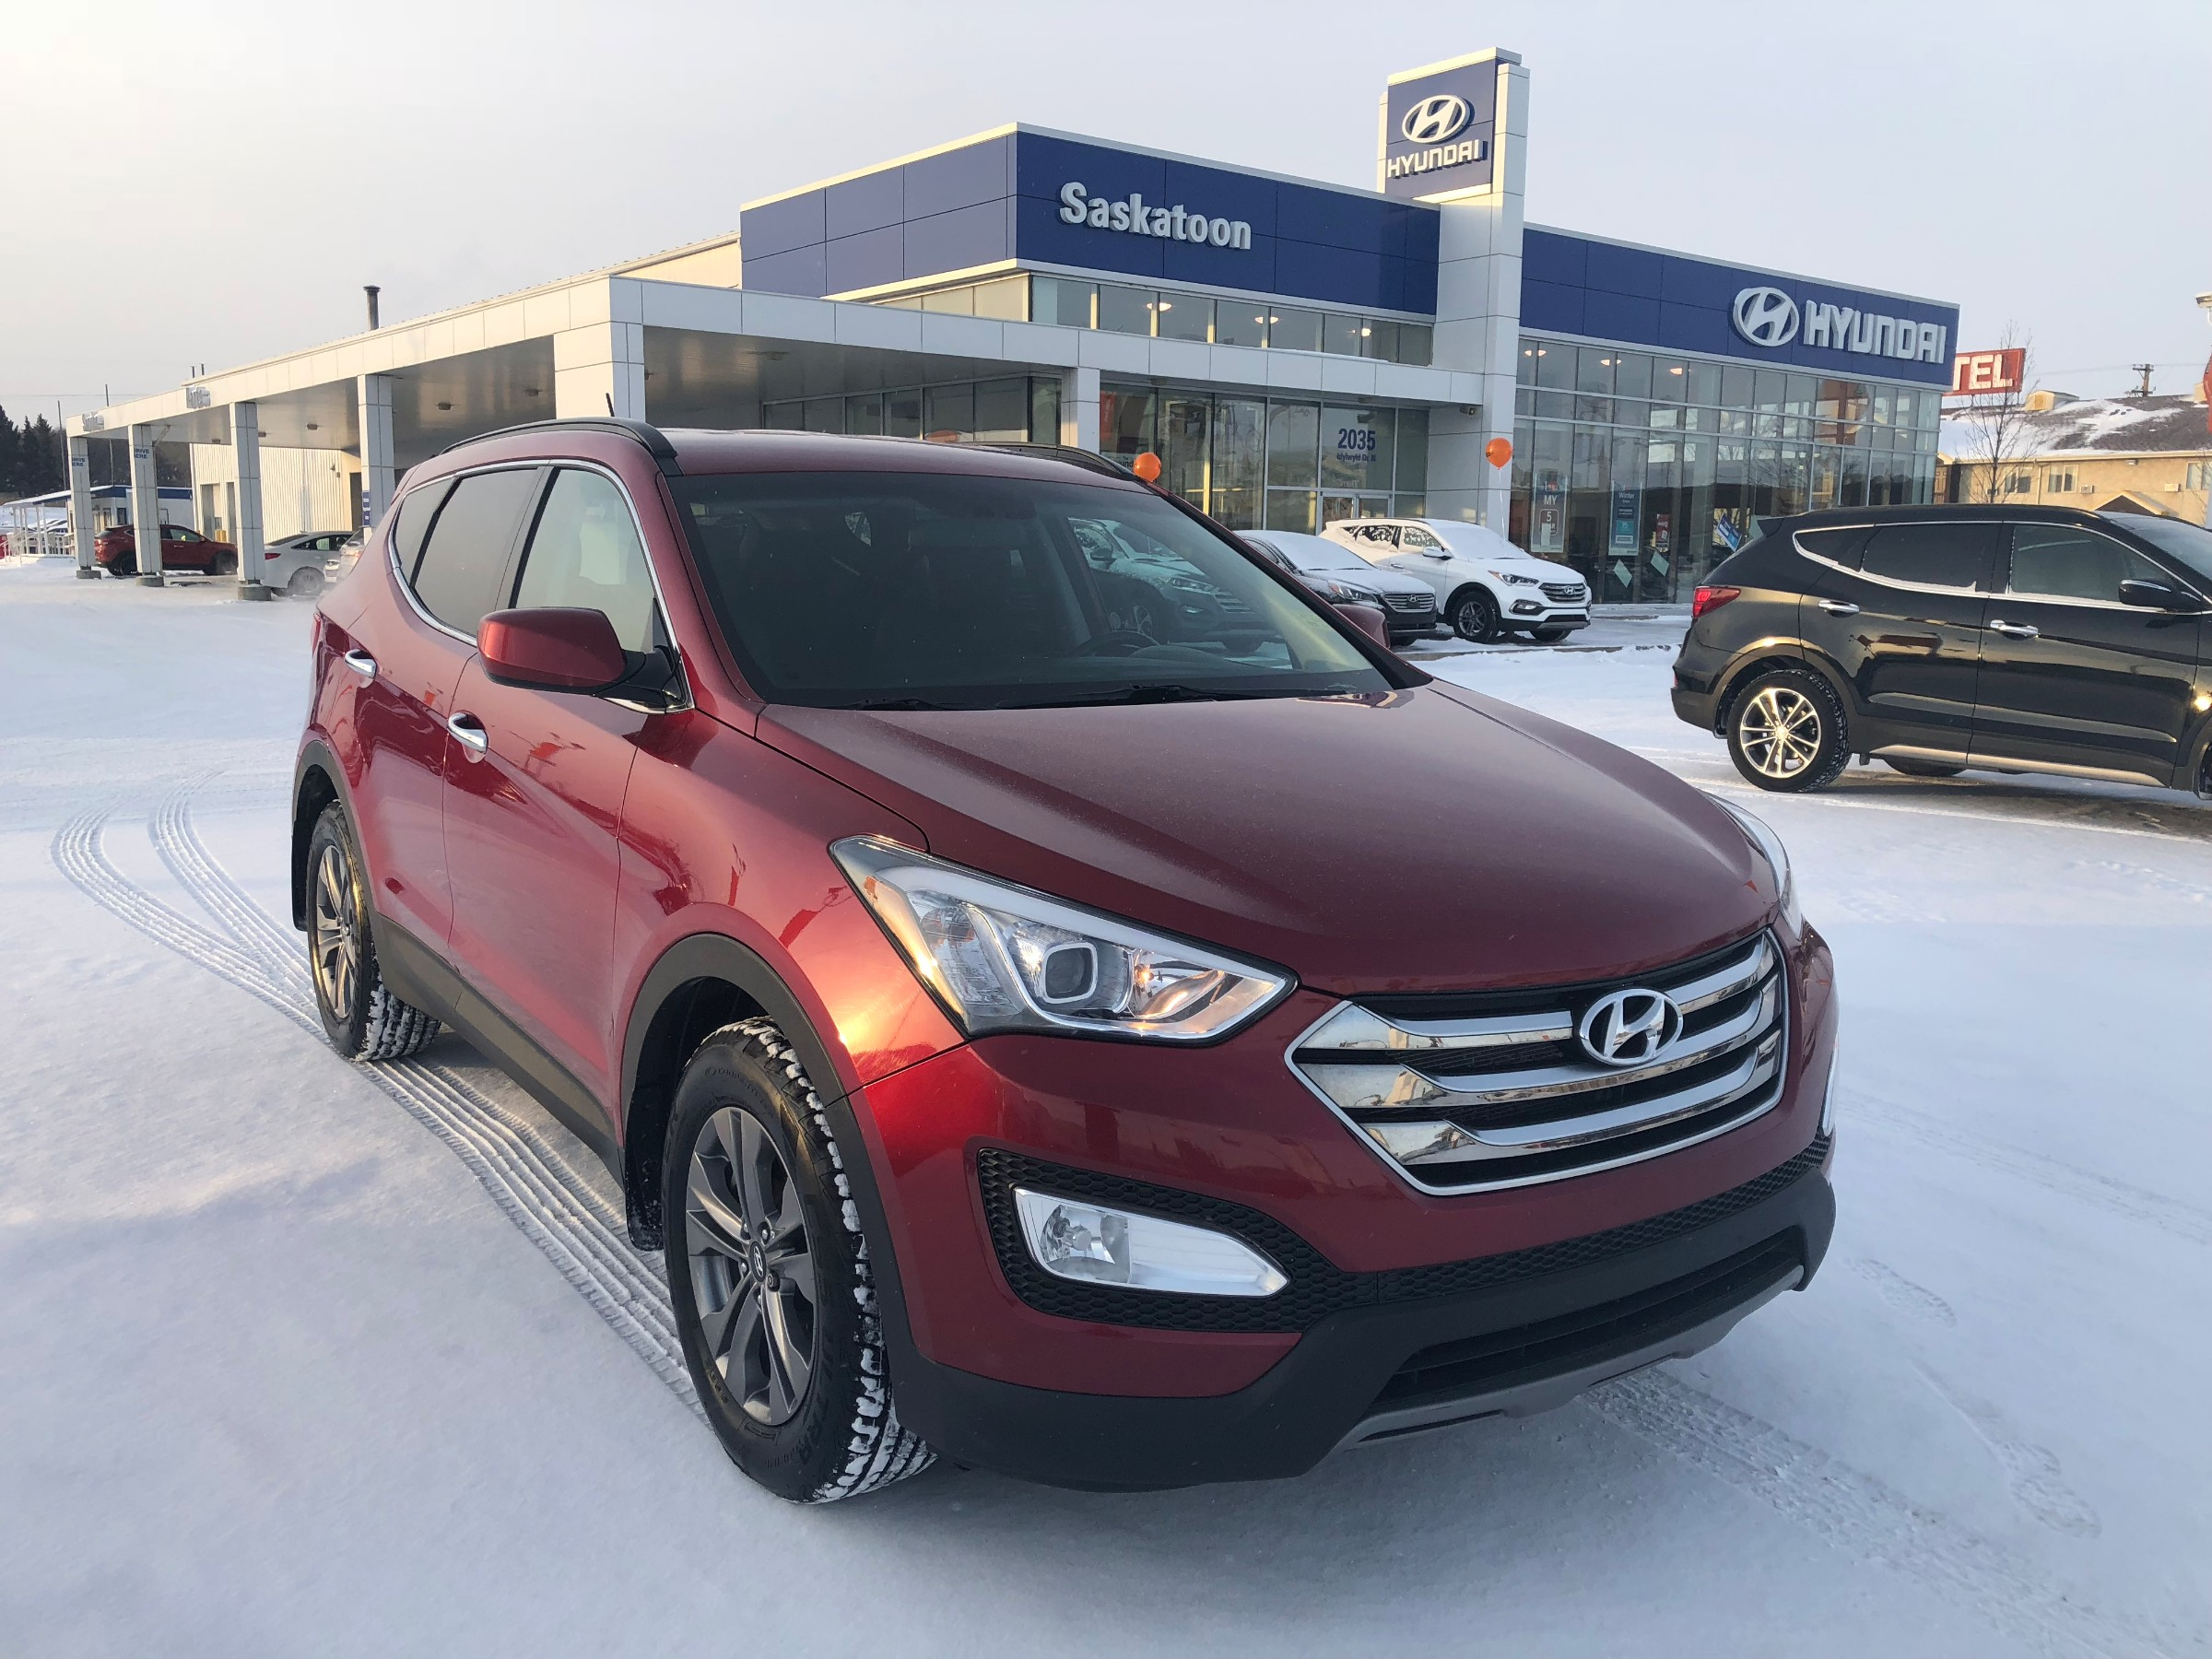 santa growing most suv production montgomery make meet sport will alabama our the for one us demand of in fe fortune hyundai help new